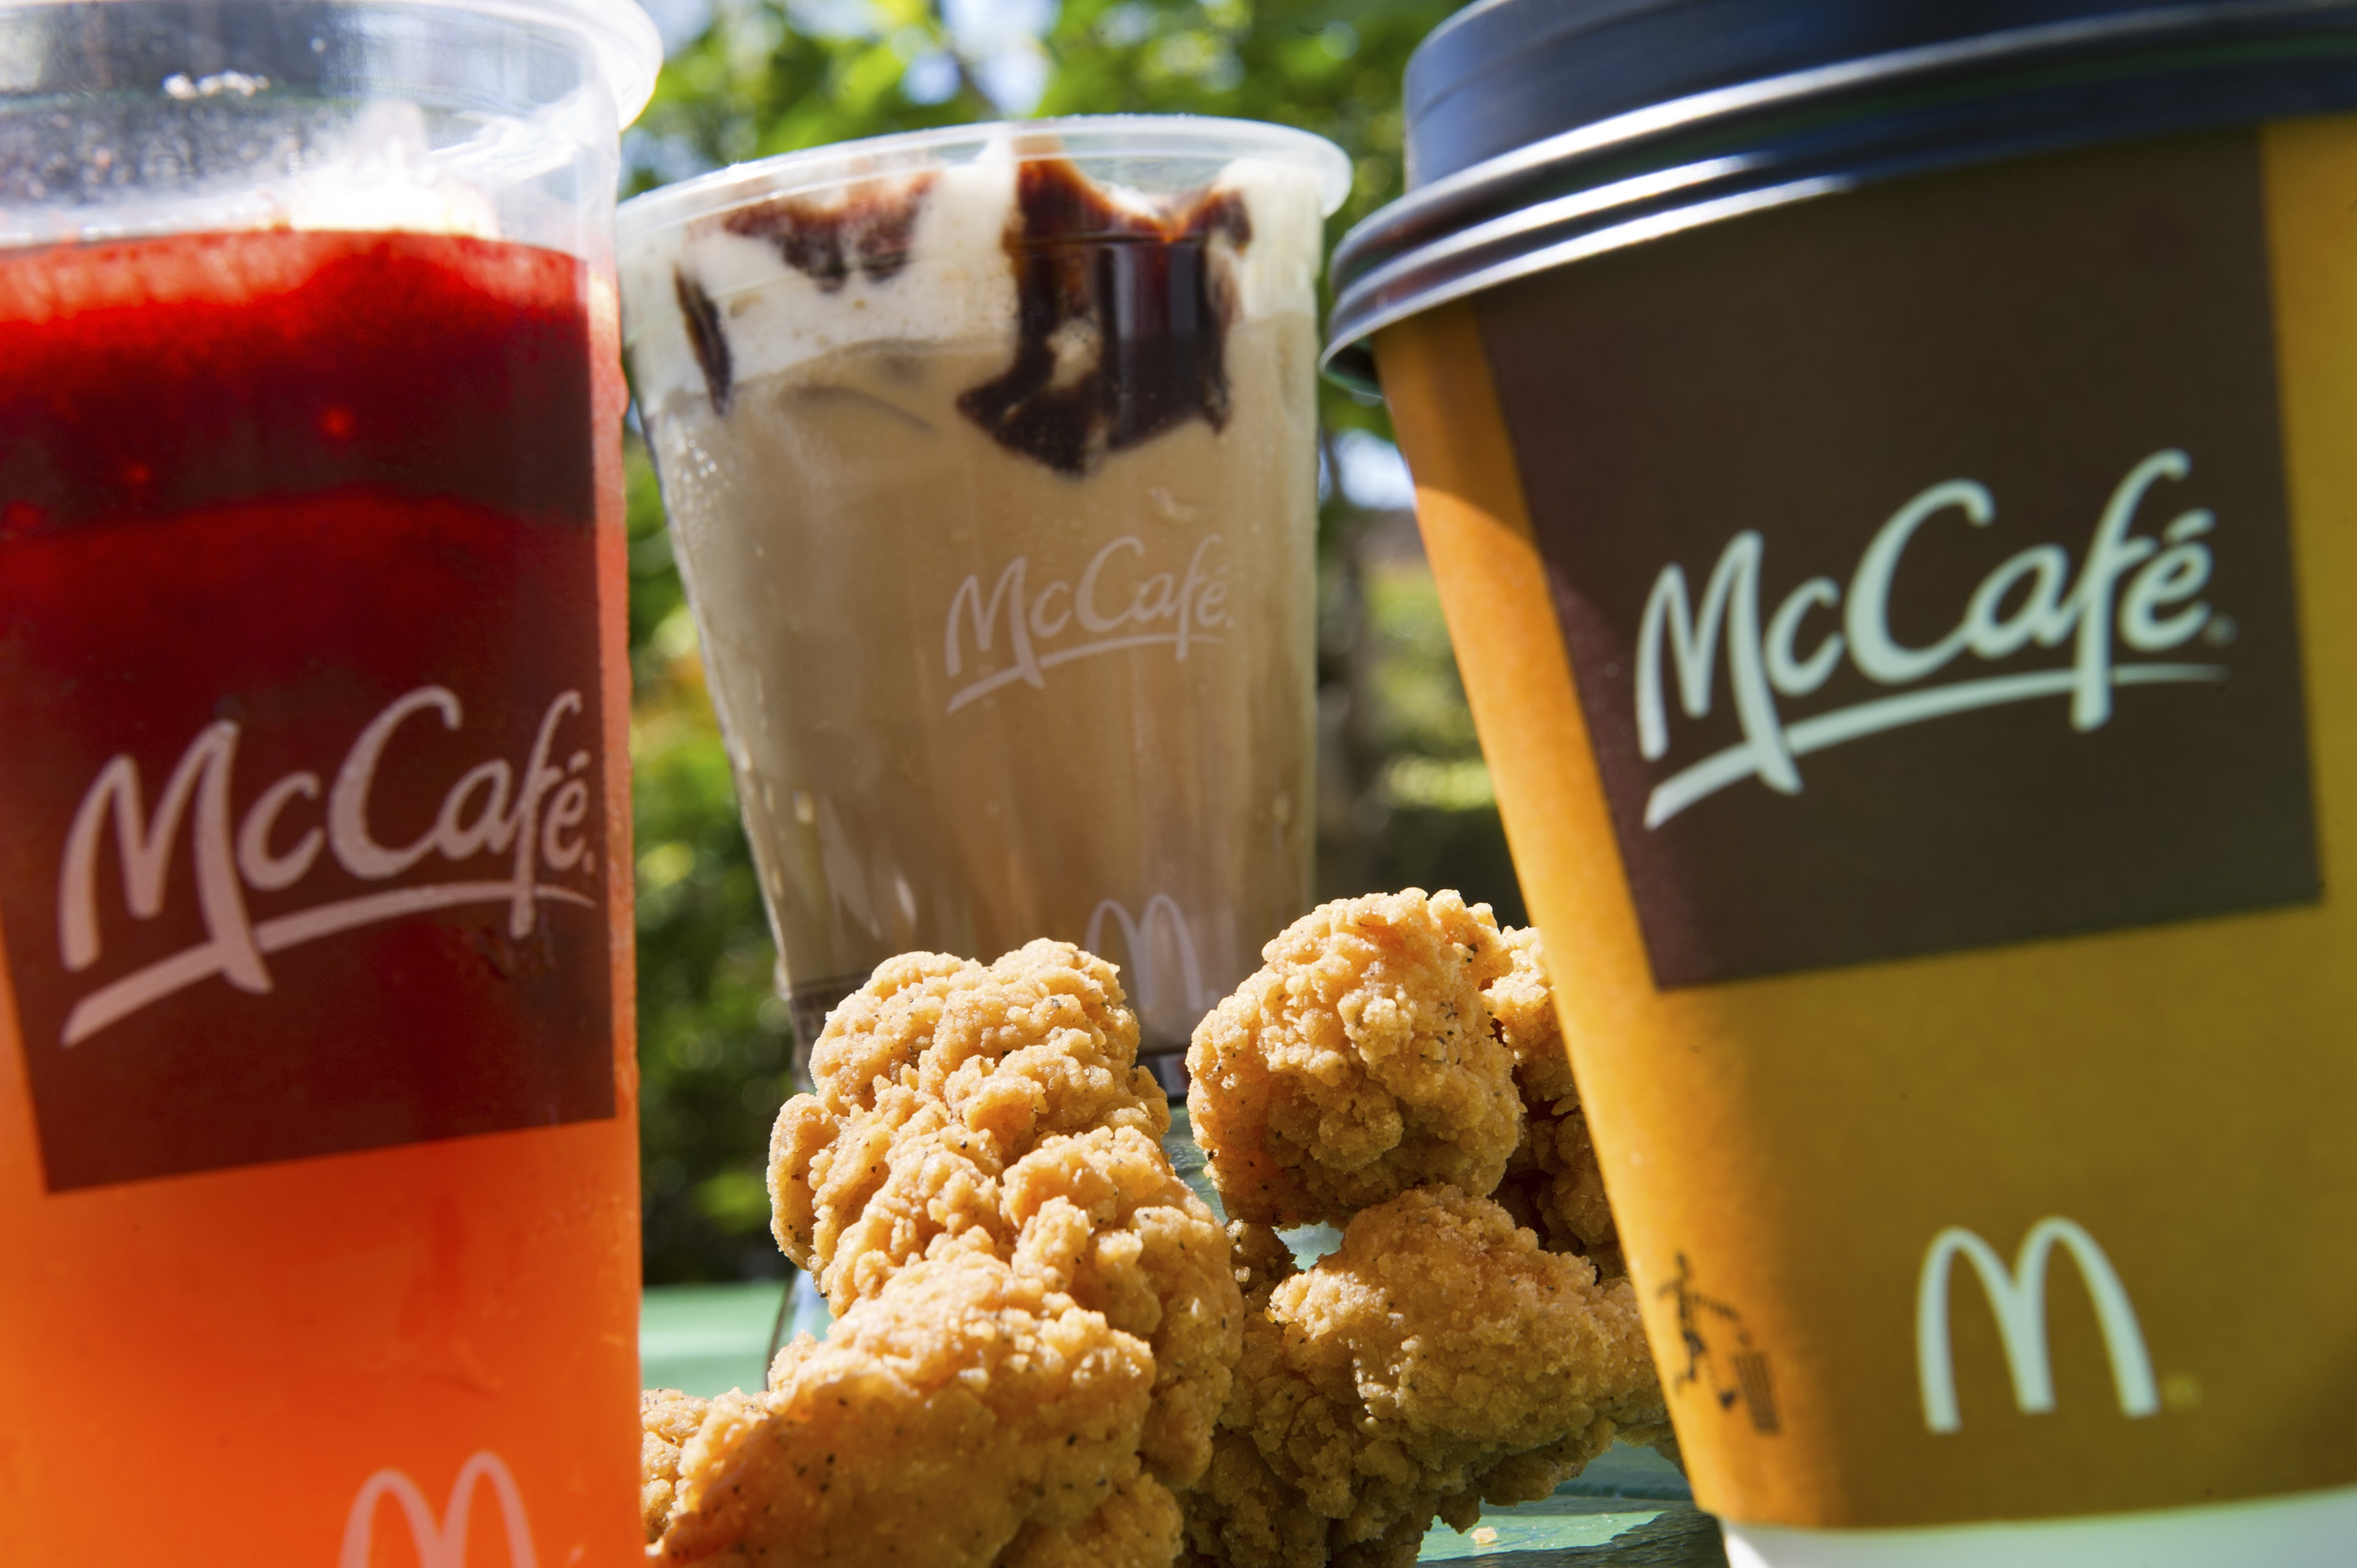 McDonald?s Profit Climbs 4.8% As New Menu Items Drive U.S. Sales